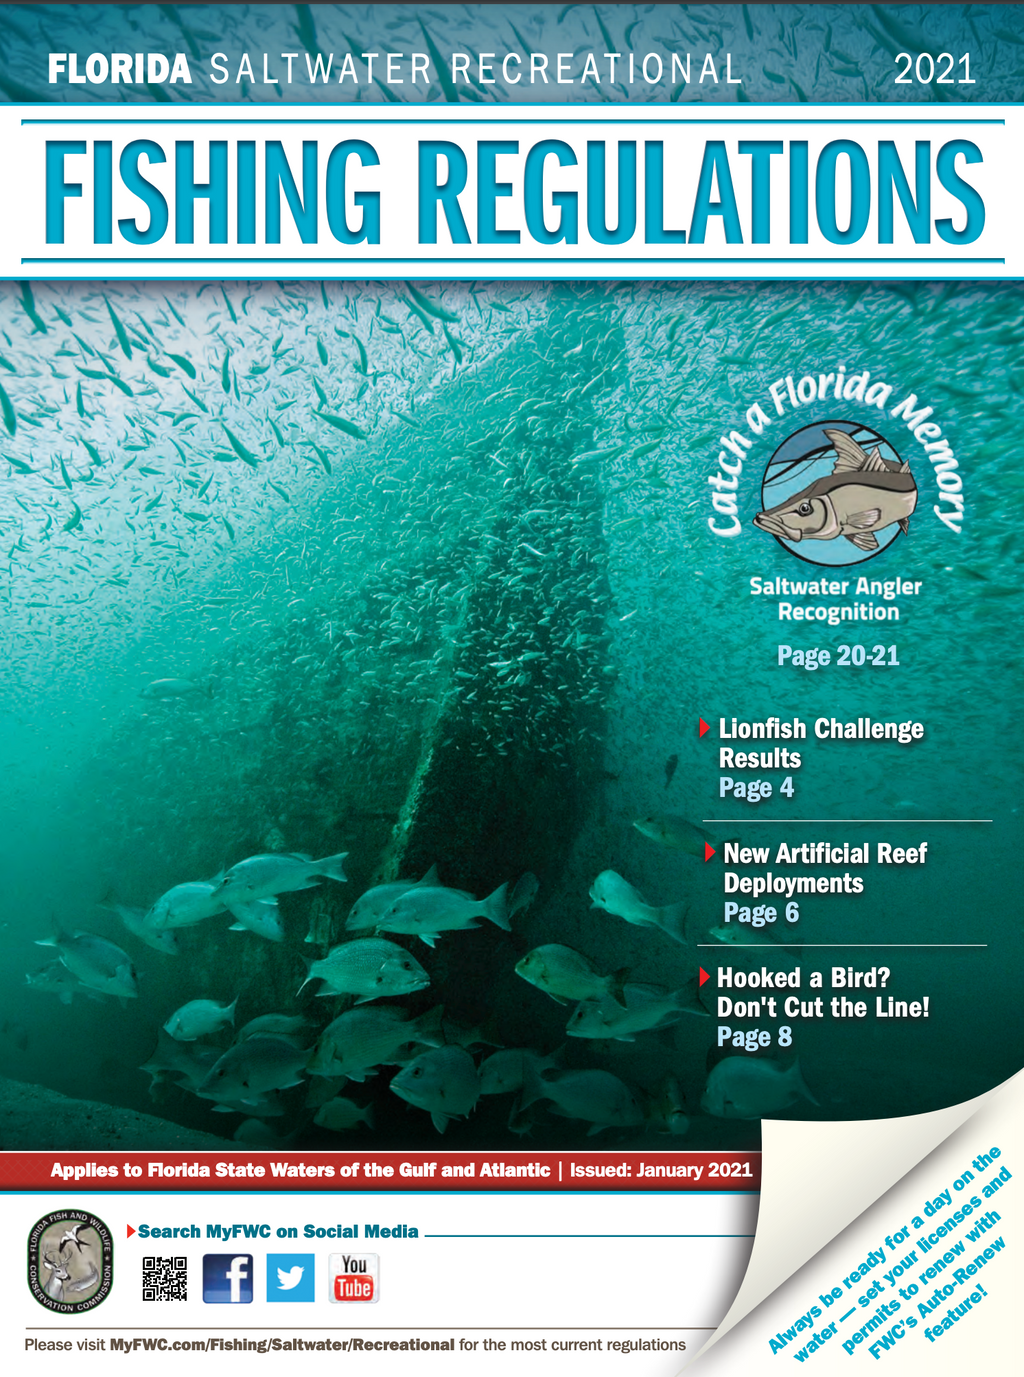 Florida Saltwater Recreational Publication 2021 - KnottyTails